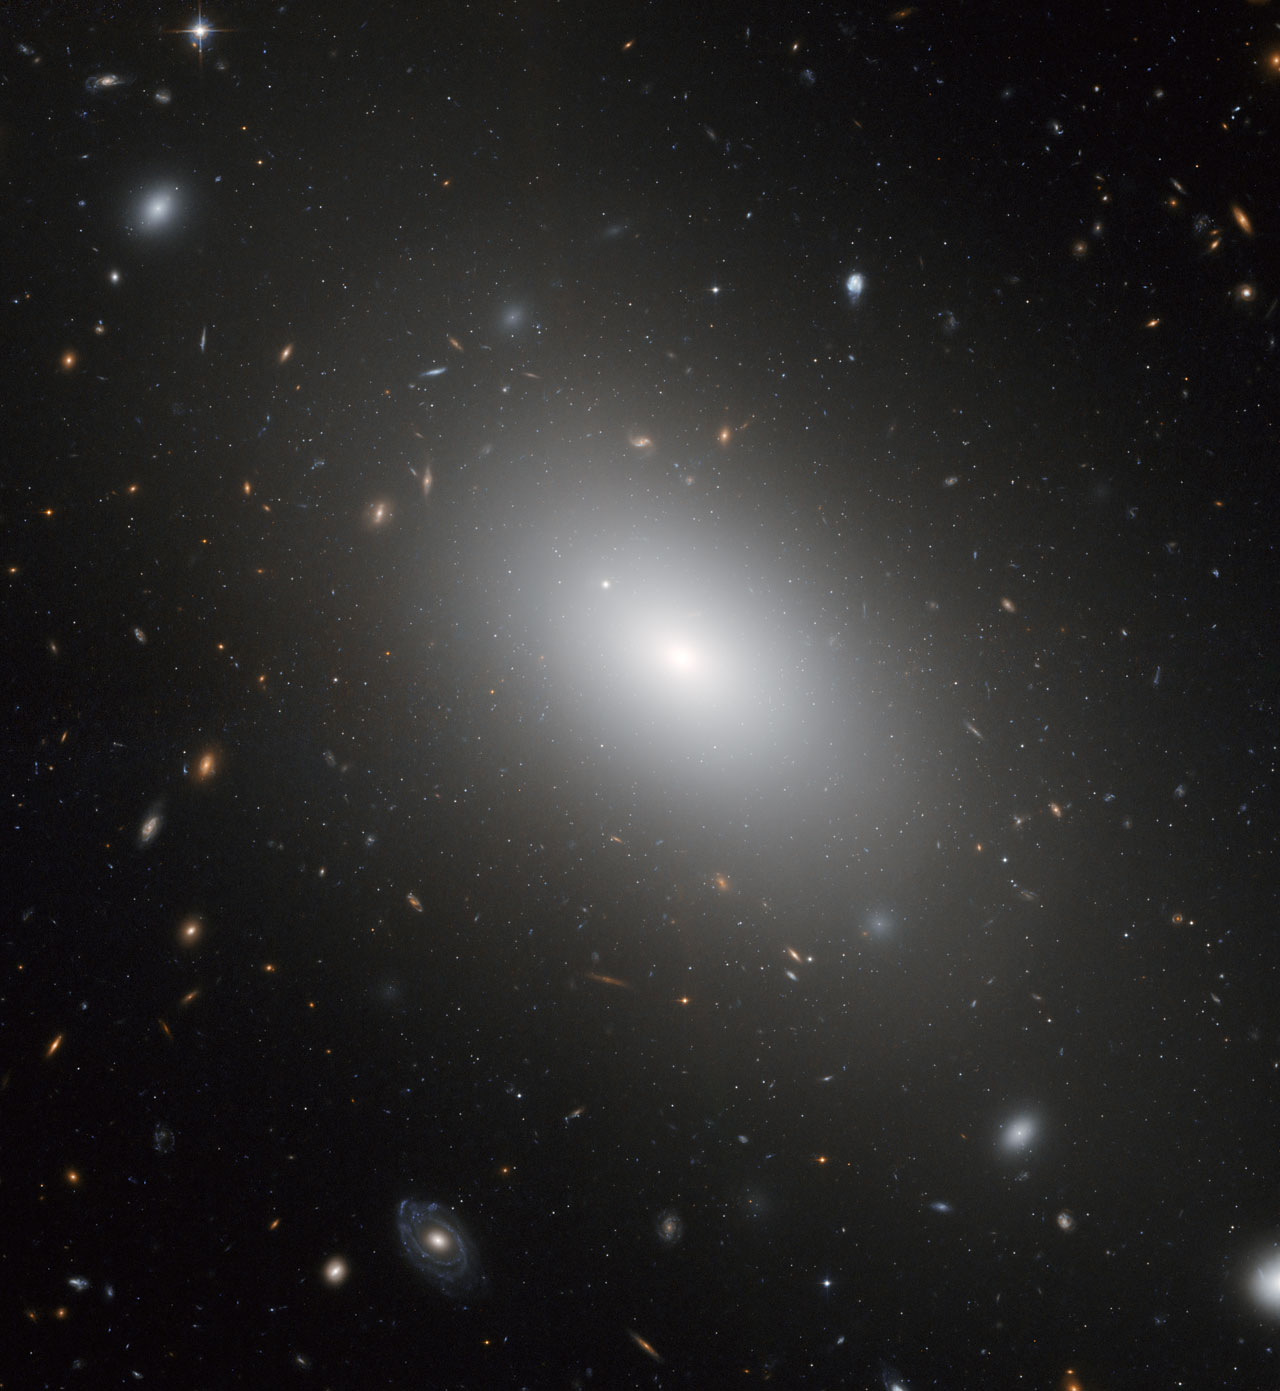 Giant elliptical galaxy NGC 1132